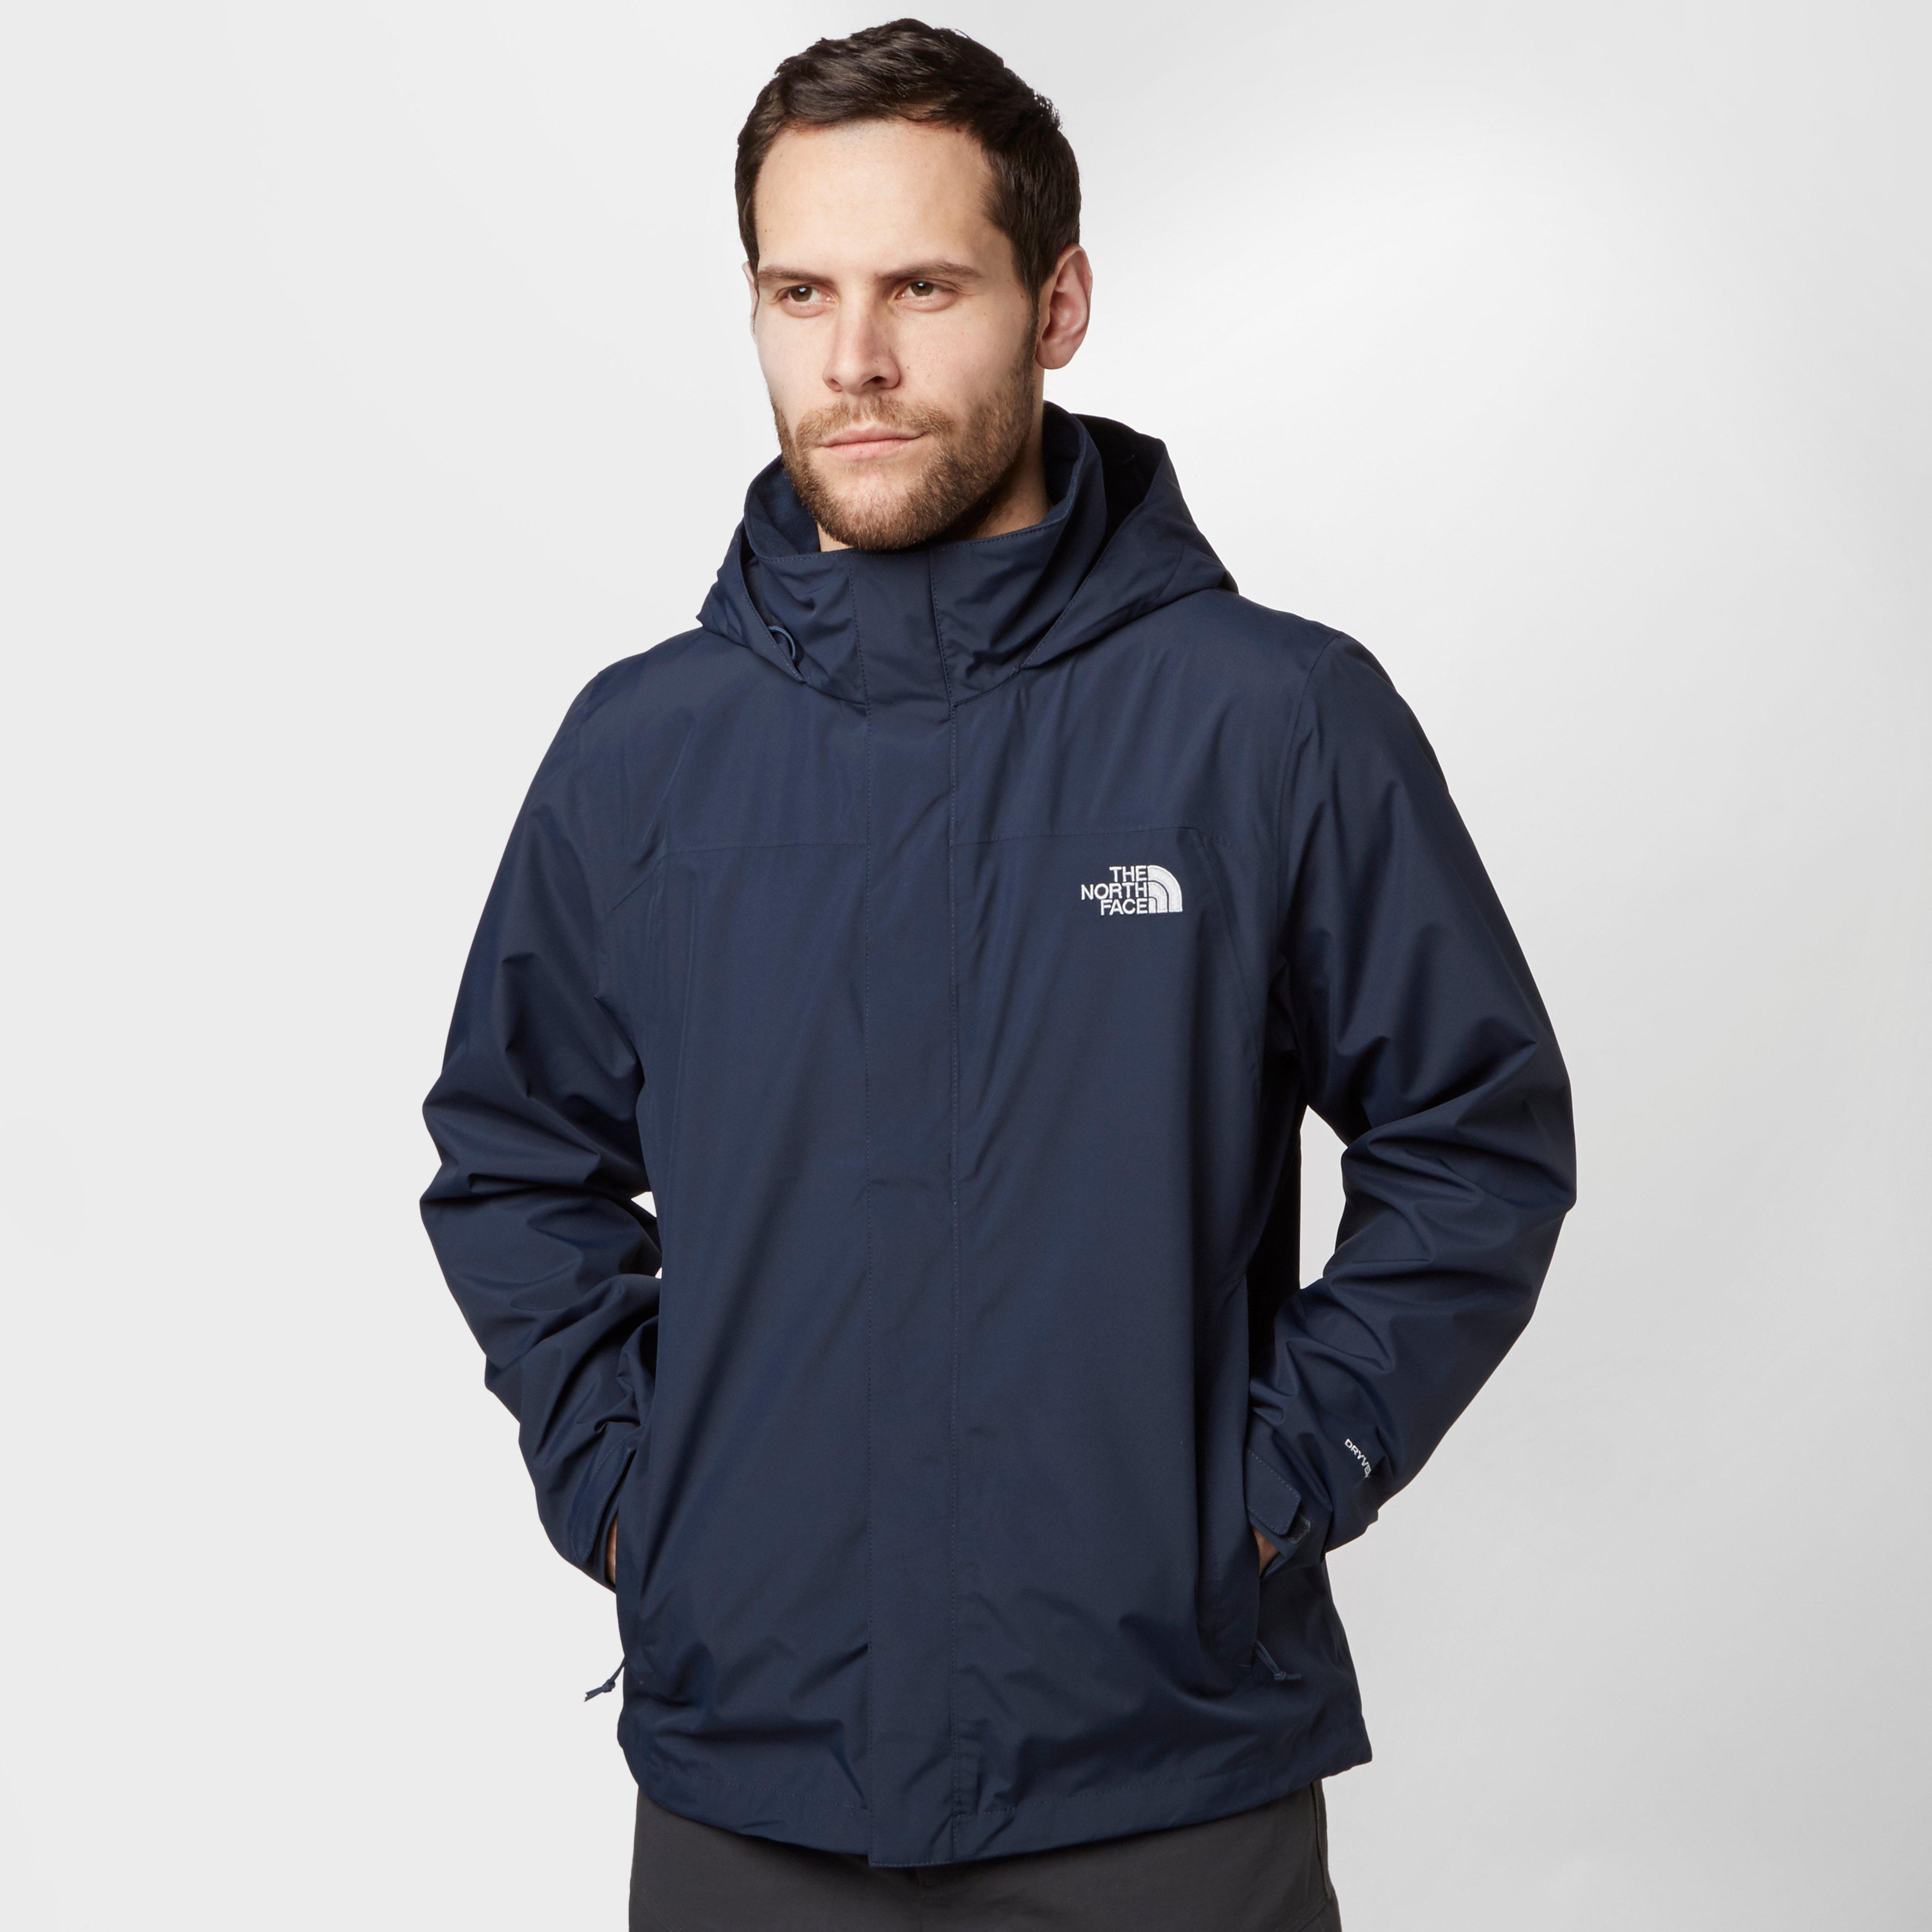 Men's Waterproof Jackets | Men's Gore Tex Jackets | Blacks